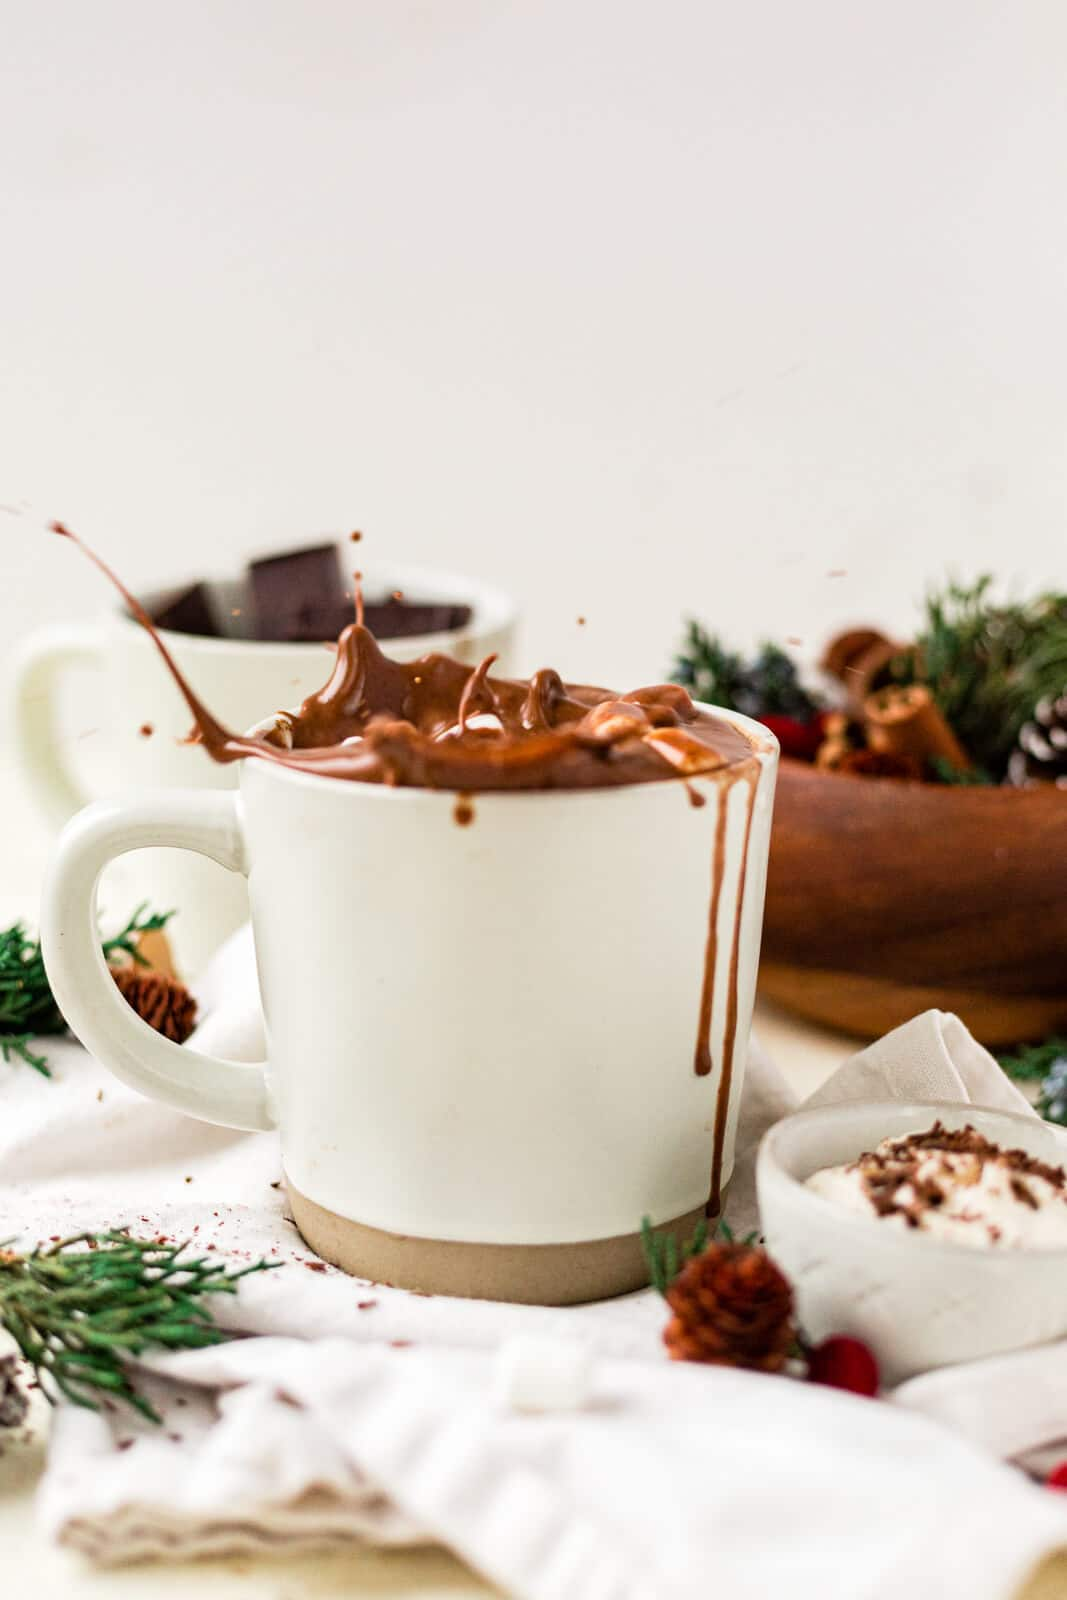 hot chocolate splashing out of the mug while a mini marshmallow is dropped into it